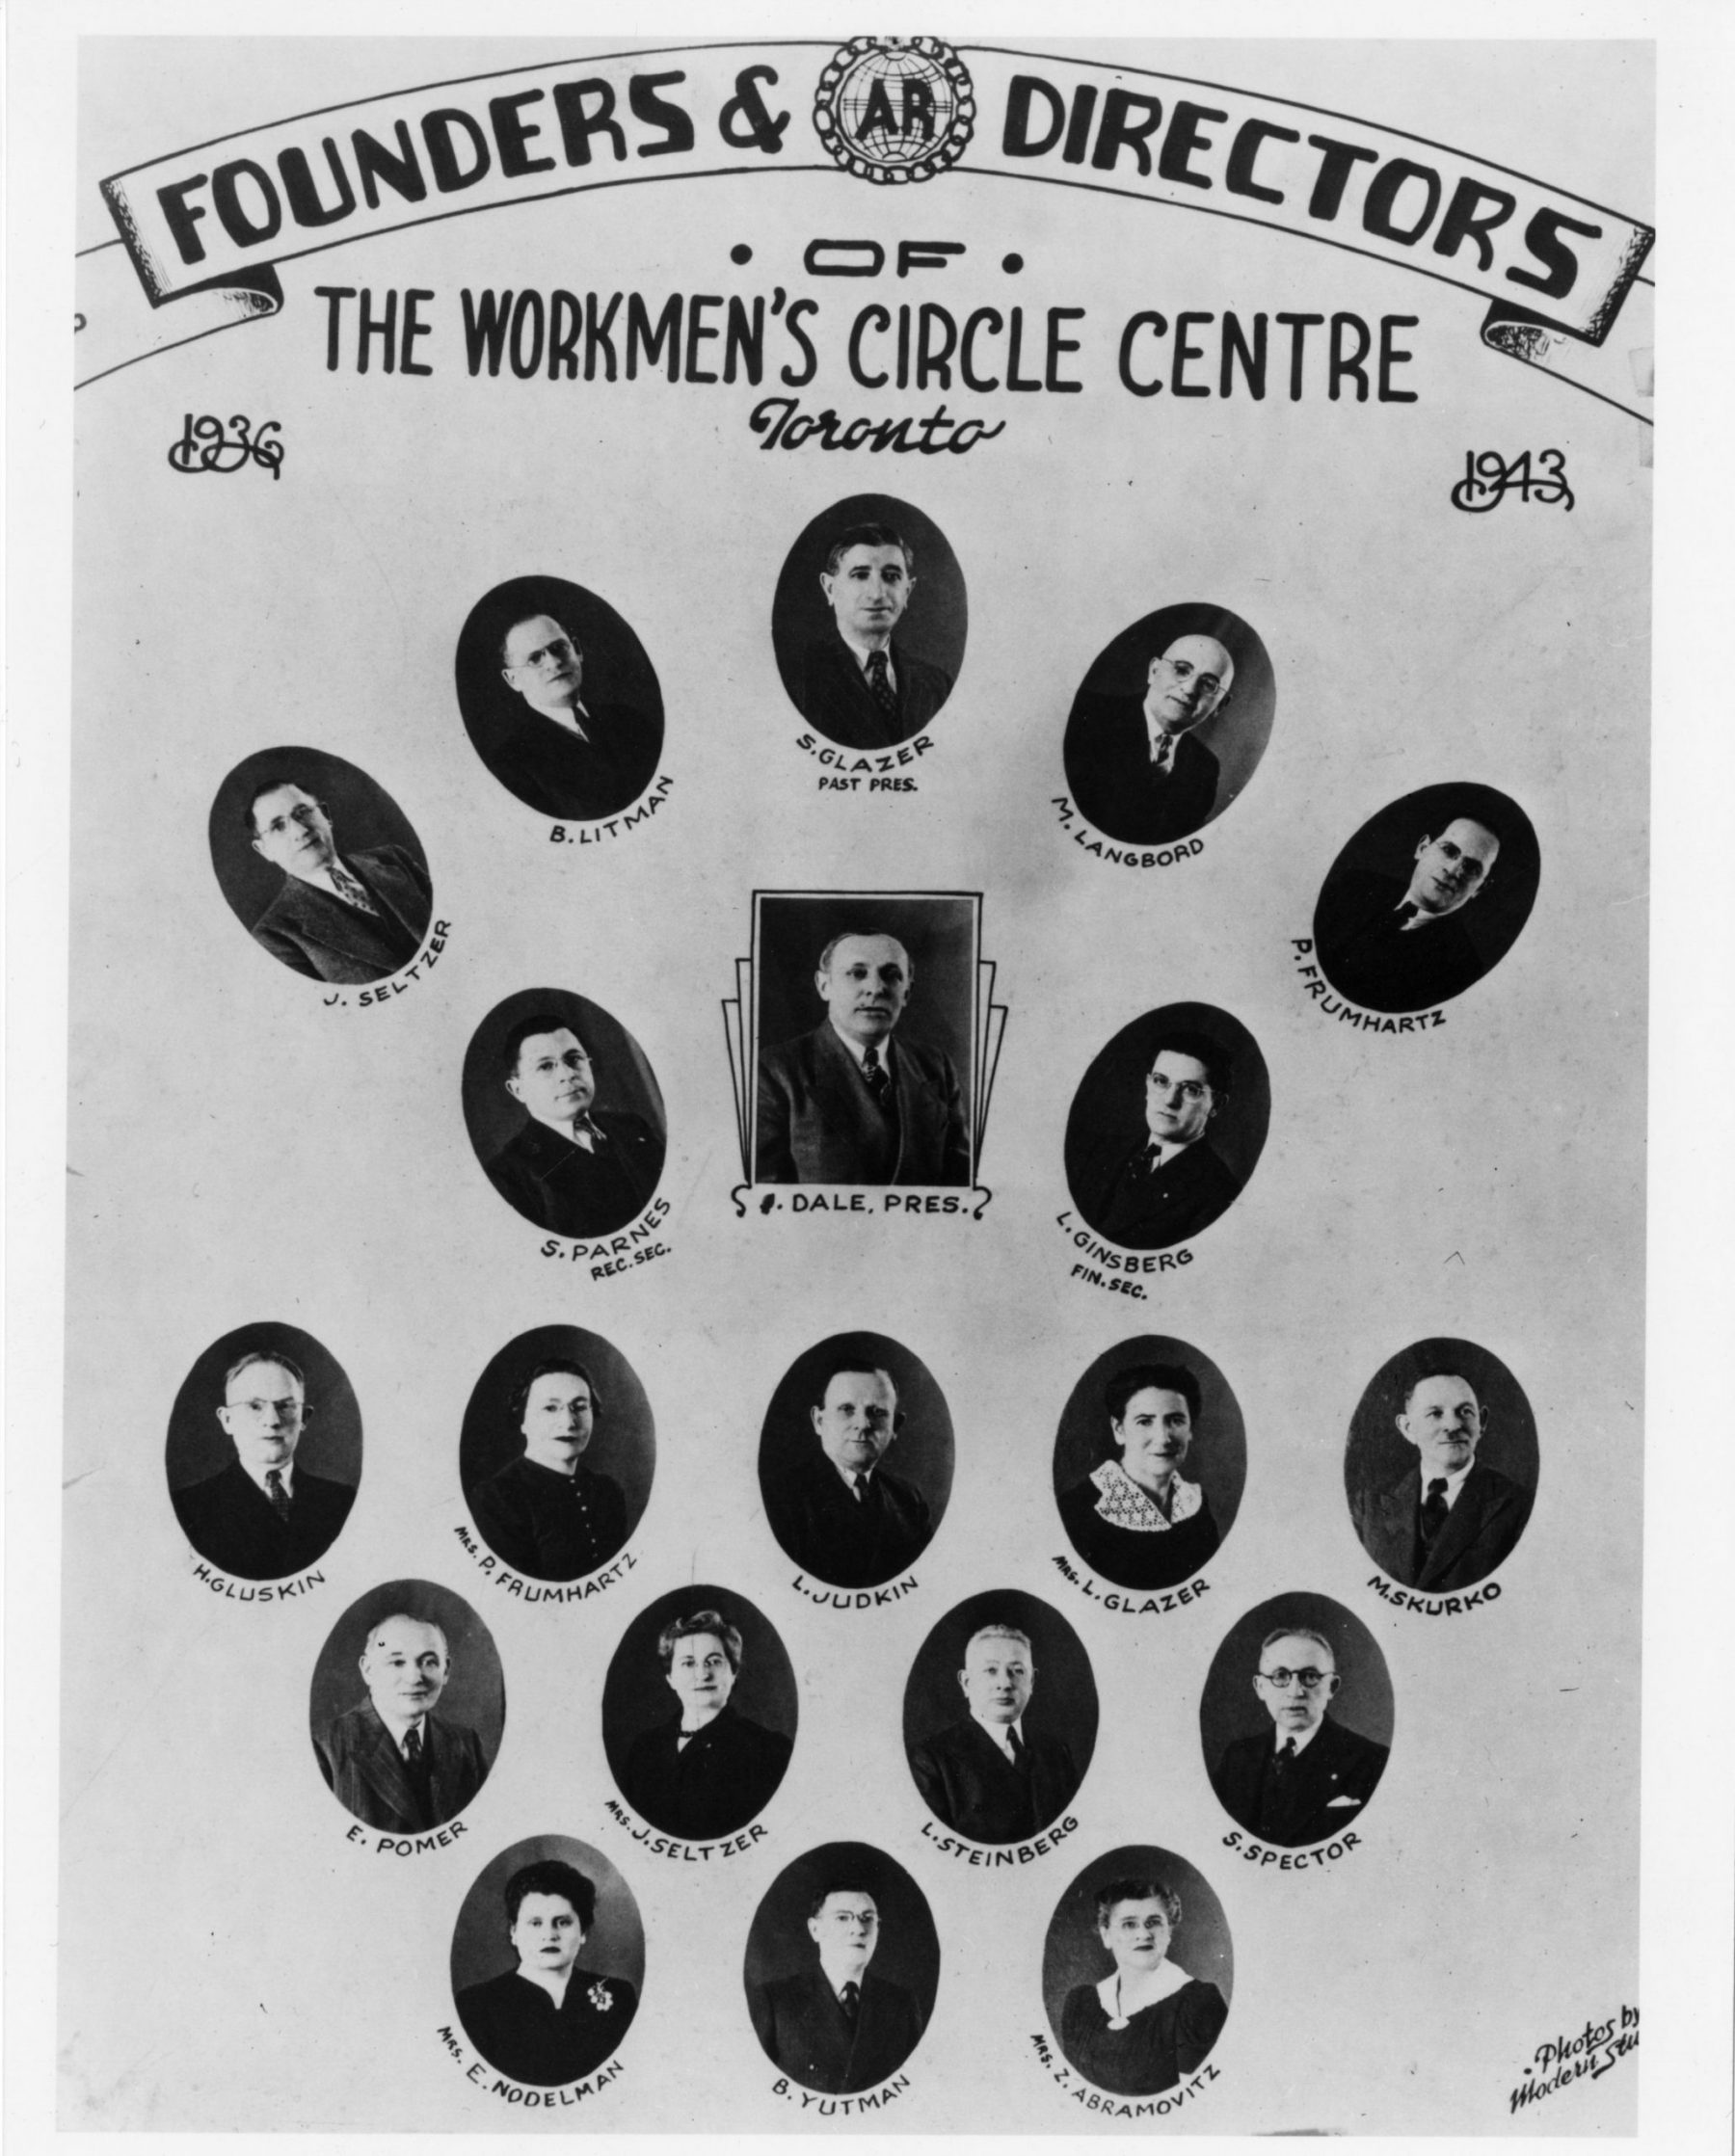 Founders and directors of the Workmen's Circle Centre or Arbeiter Ring, as it is referred to in Yiddish in 1943. The Workmen's Circle is still active in Toronto and supports and promotes Jewish culture, education, and the Yiddish language.   OJA, item 3054.